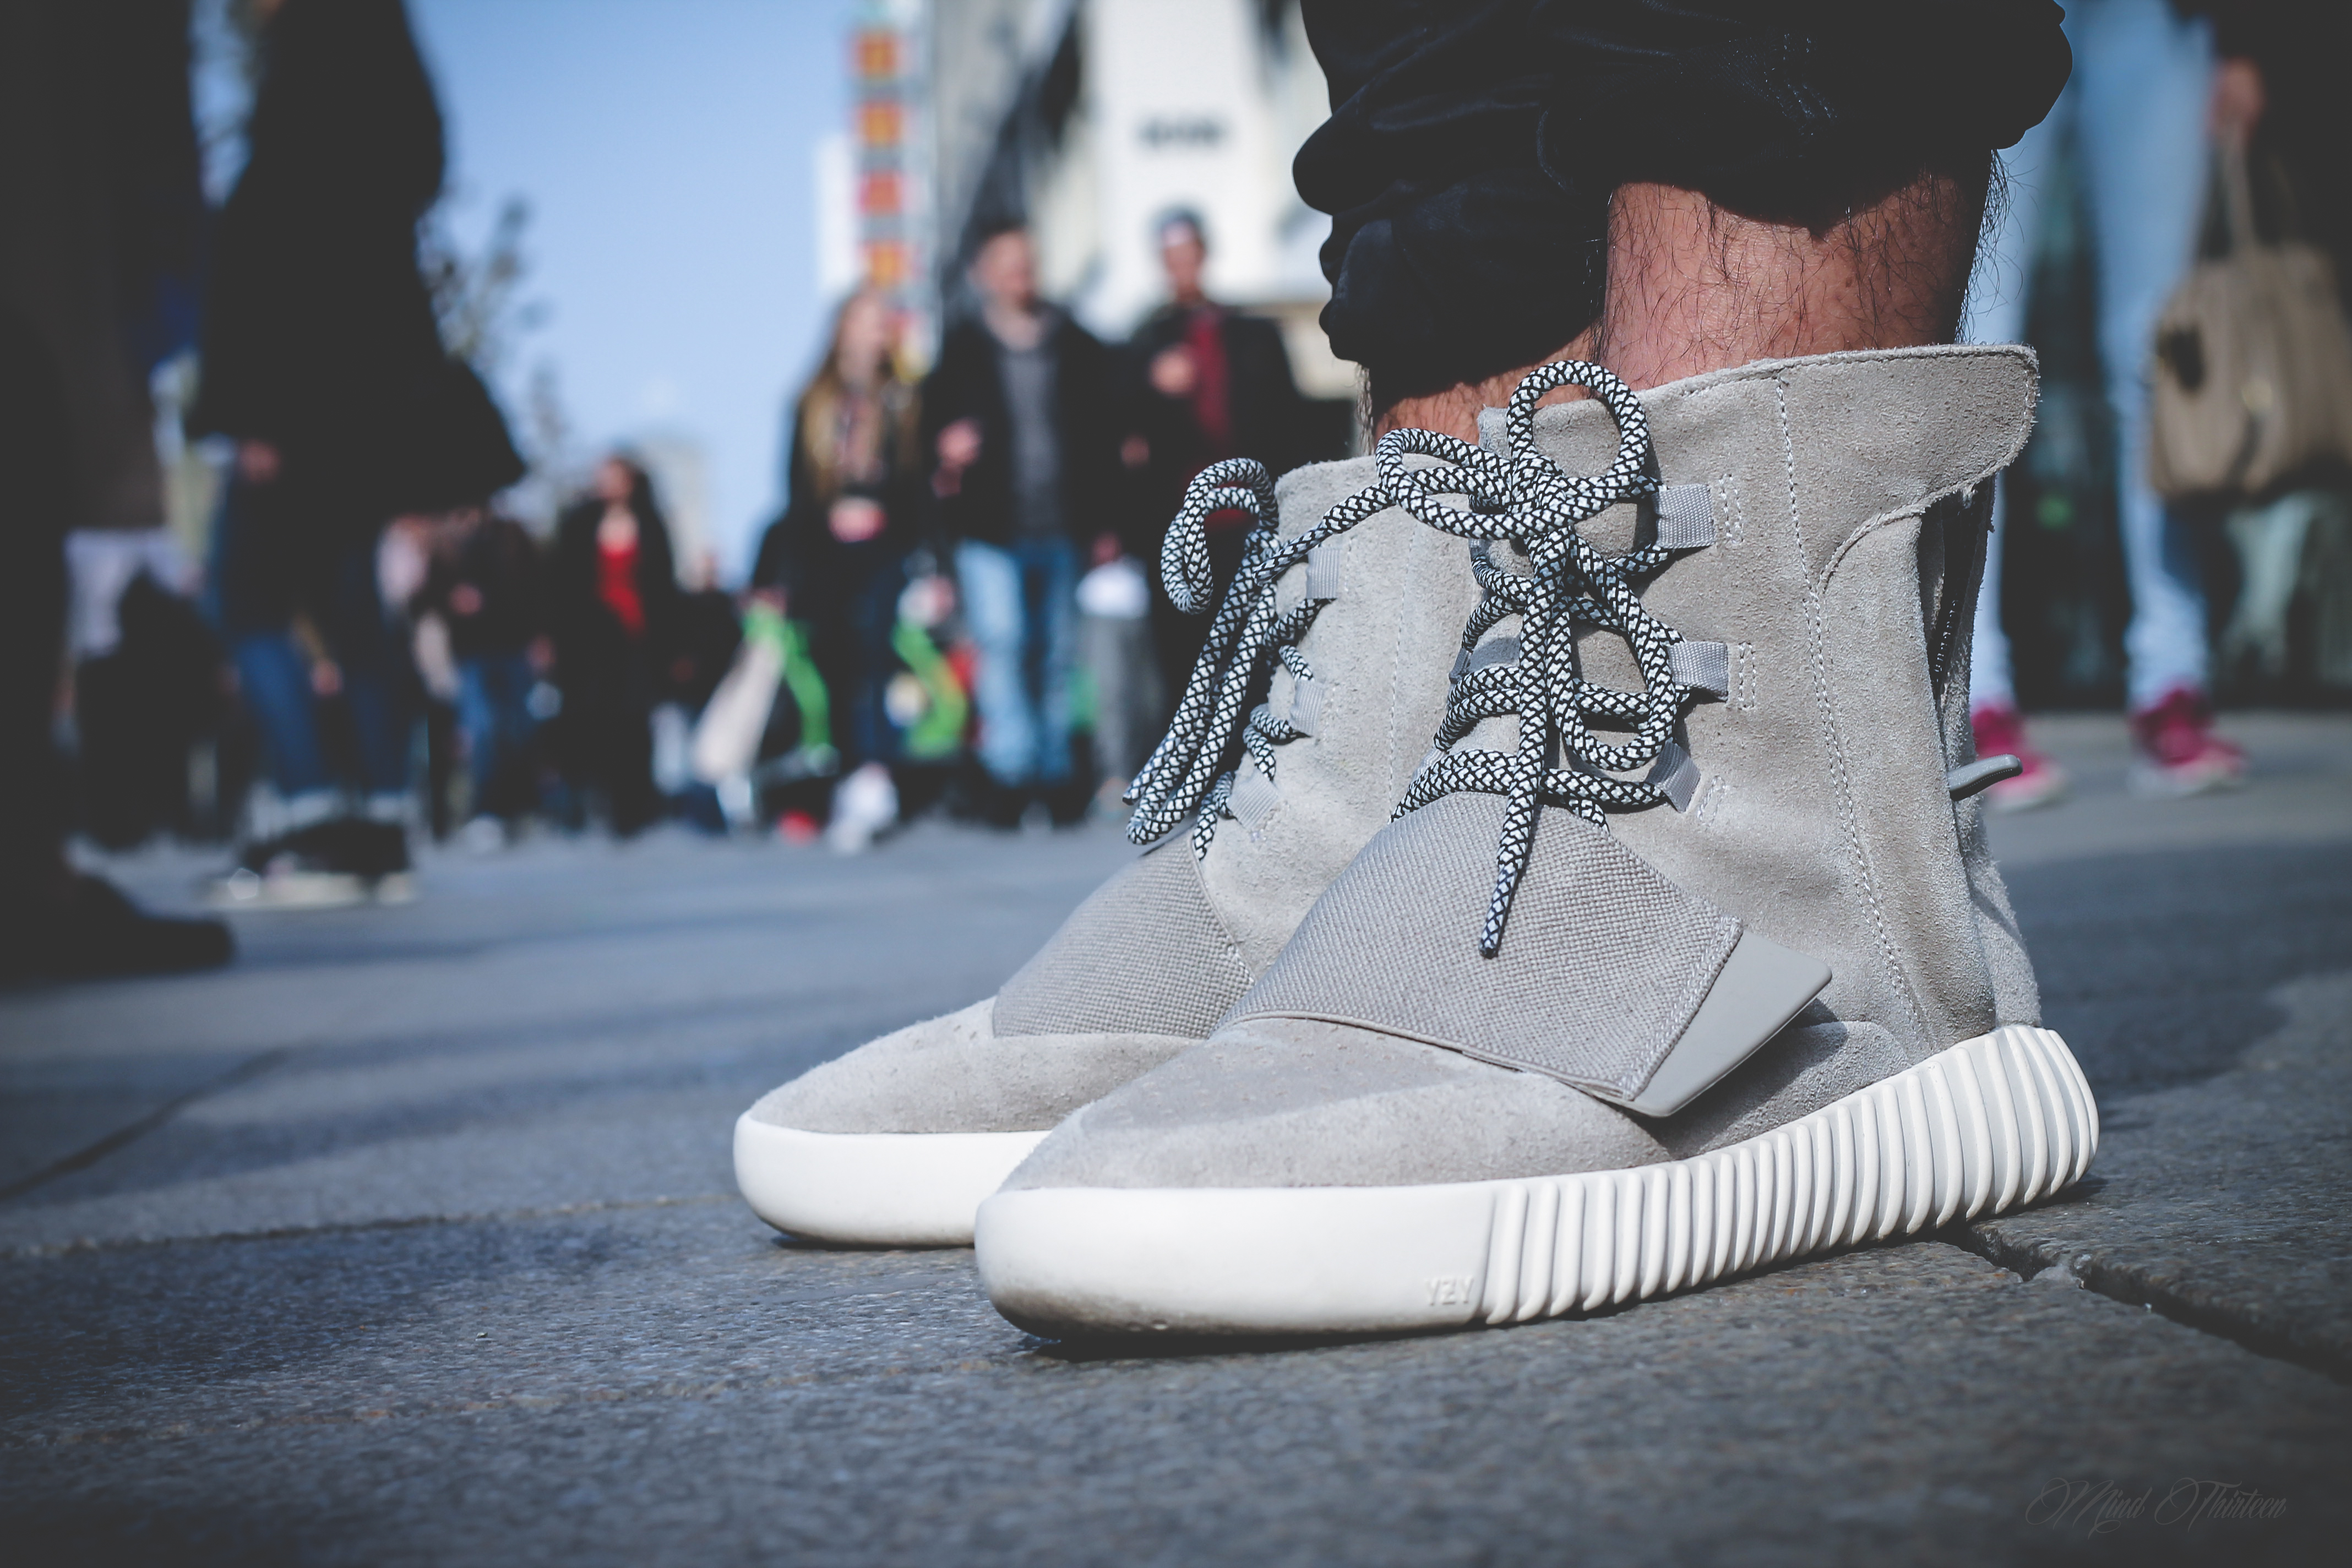 Adidas Yeezy 750 On Feet